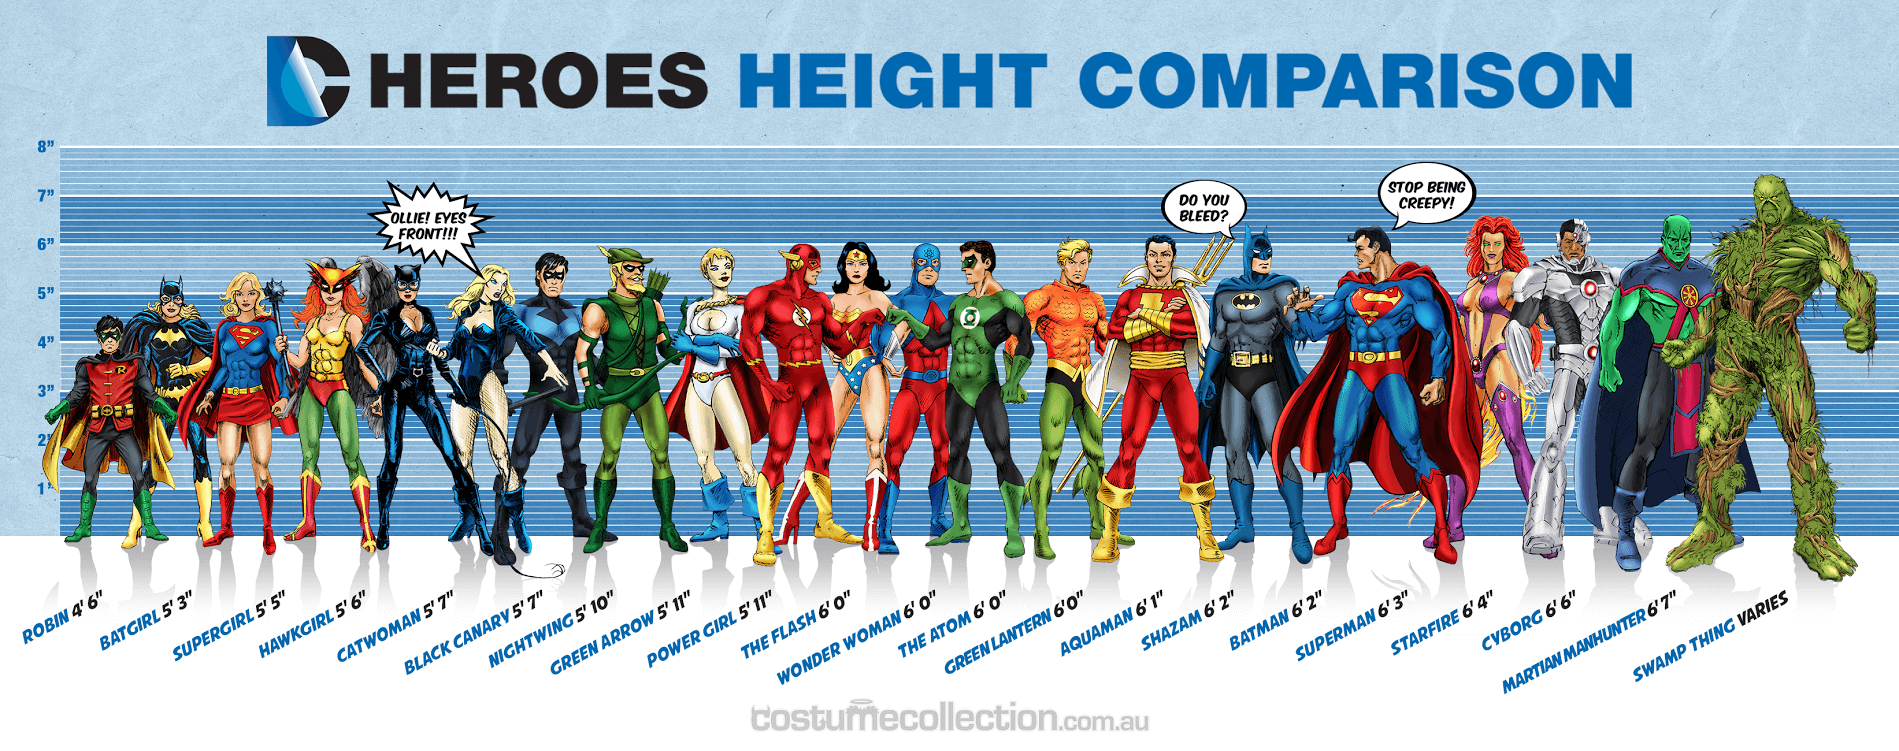 superhero-height-comparison-chart-infographic